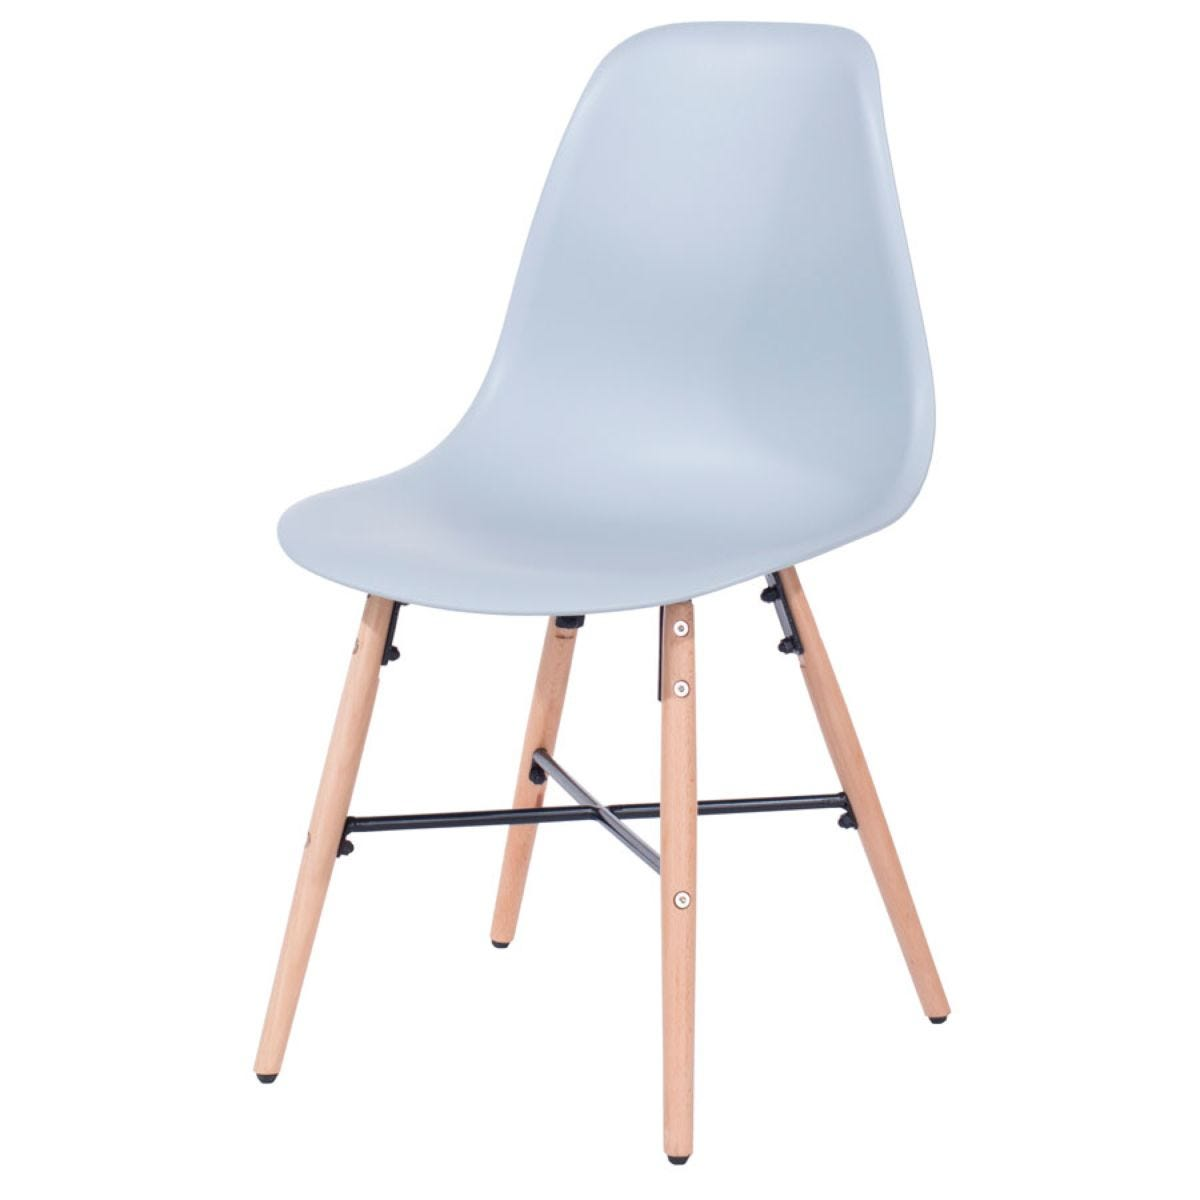 Roloku Pair of Chairs with Metal Cross Rails - Grey